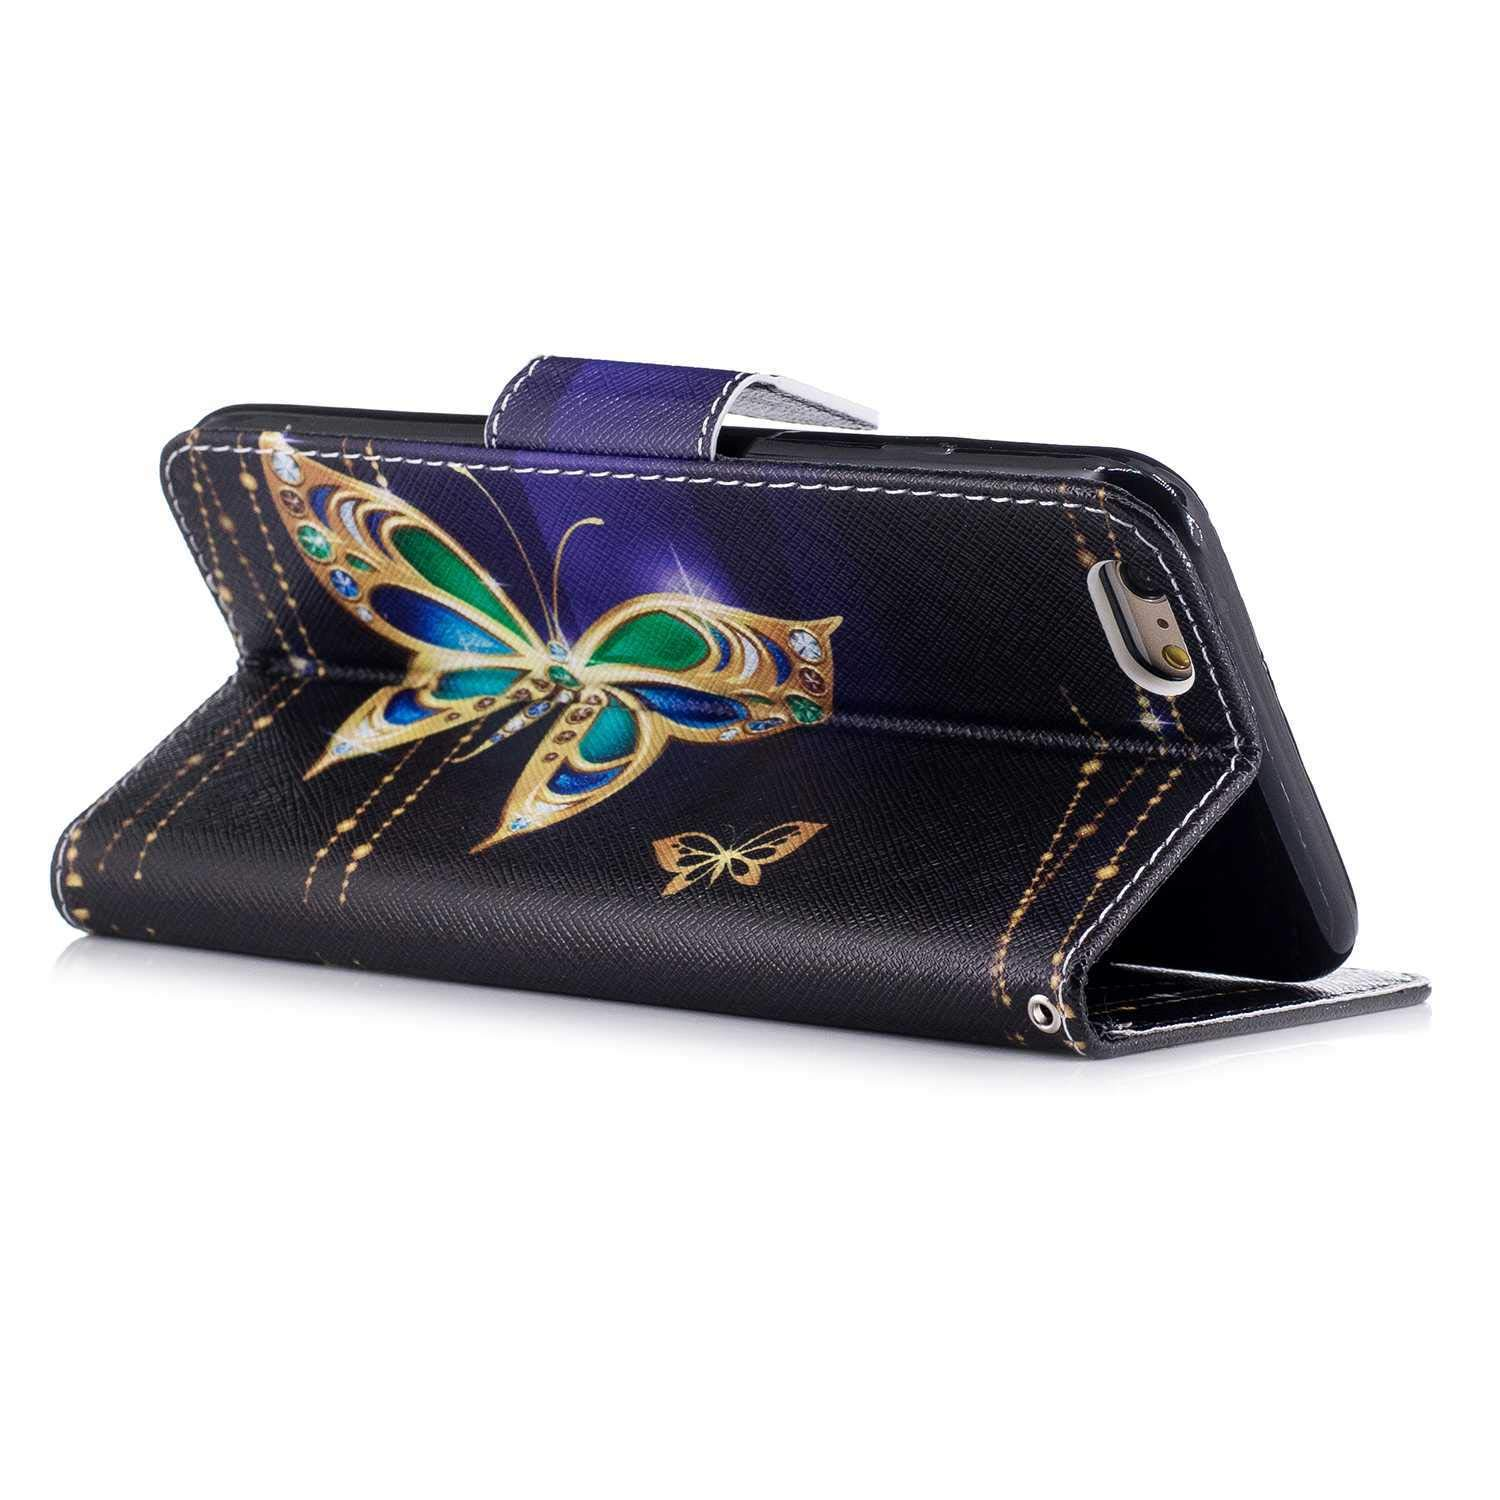 CAXPRO iPhone 6 Plus // 6s Plus Case Premium PU Leather Protective Cover Wallet Case for Apple iPhone 6 Plus // 6s Plus with ID Credit Card Slot Lotus Magnetic Closure